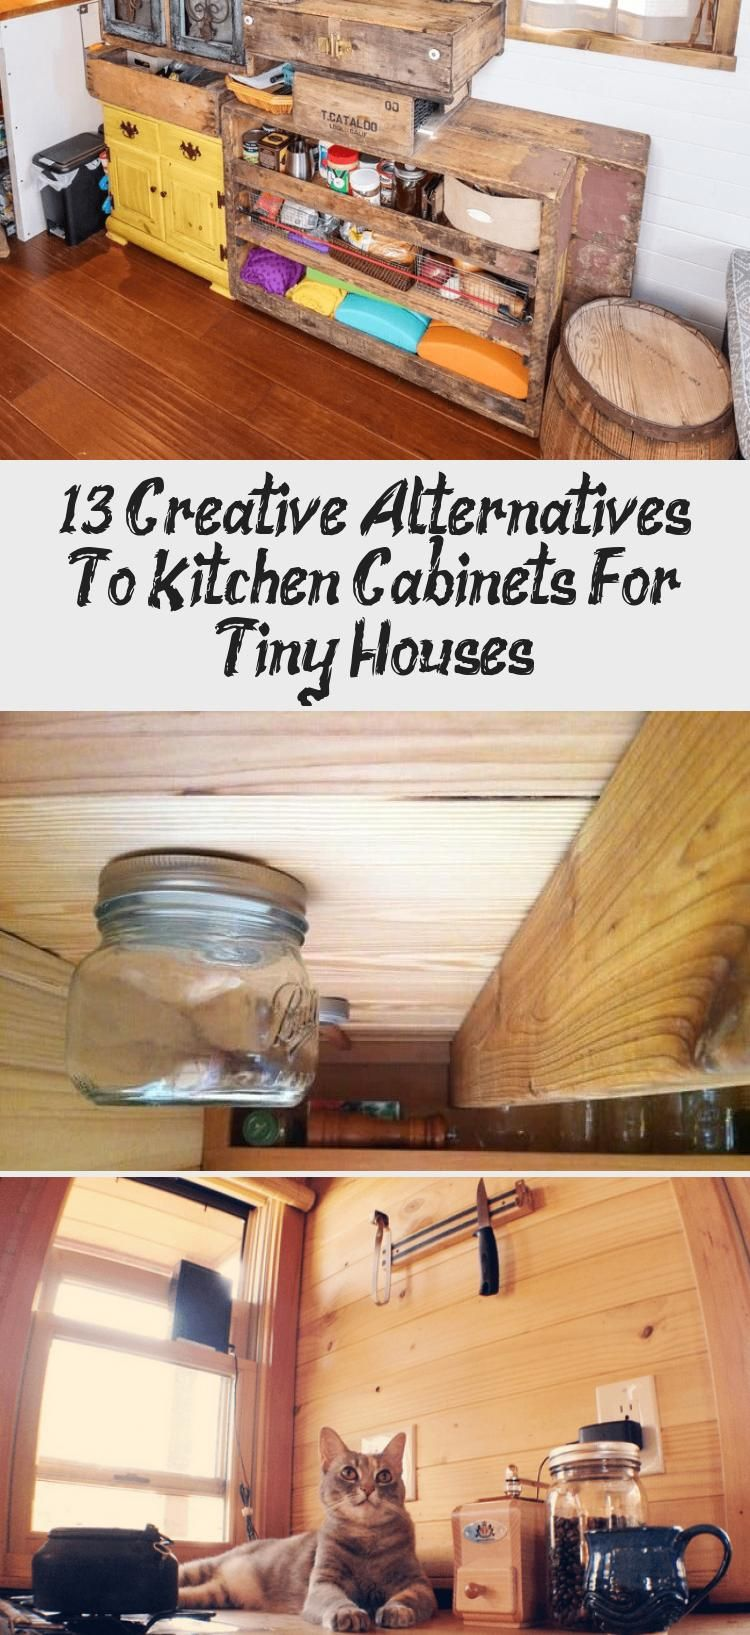 Kitchen Cabinets For Tiny Houses 13 Alternative Designs Tinyhousediycheapdesign In 2020 Tiny House Kitchen Cabinets Cheap Diy